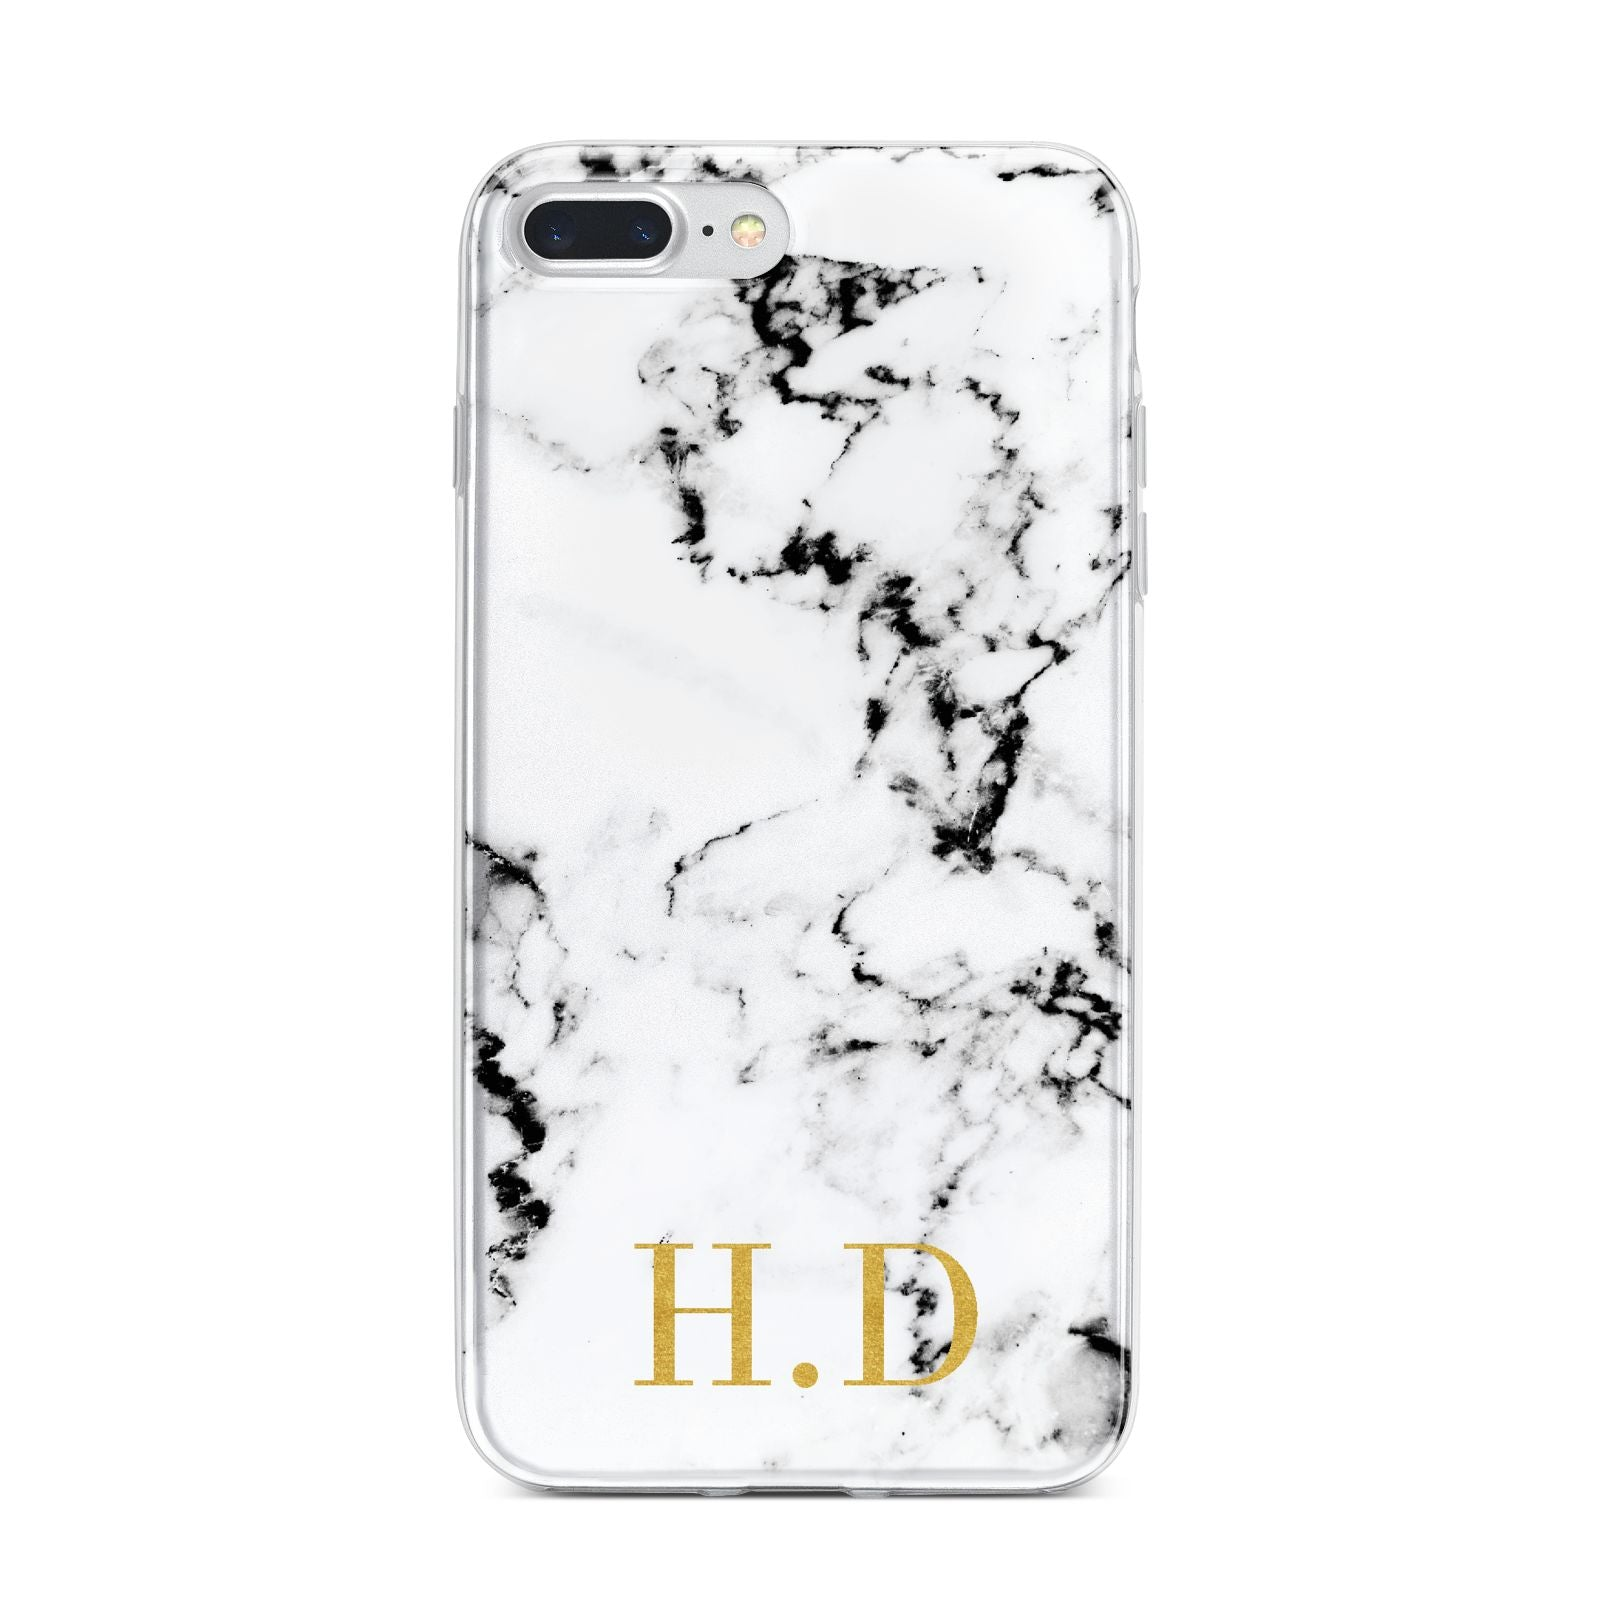 Personalised Gold Initials Marble New iPhone 7 Plus Bumper Case on Silver iPhone